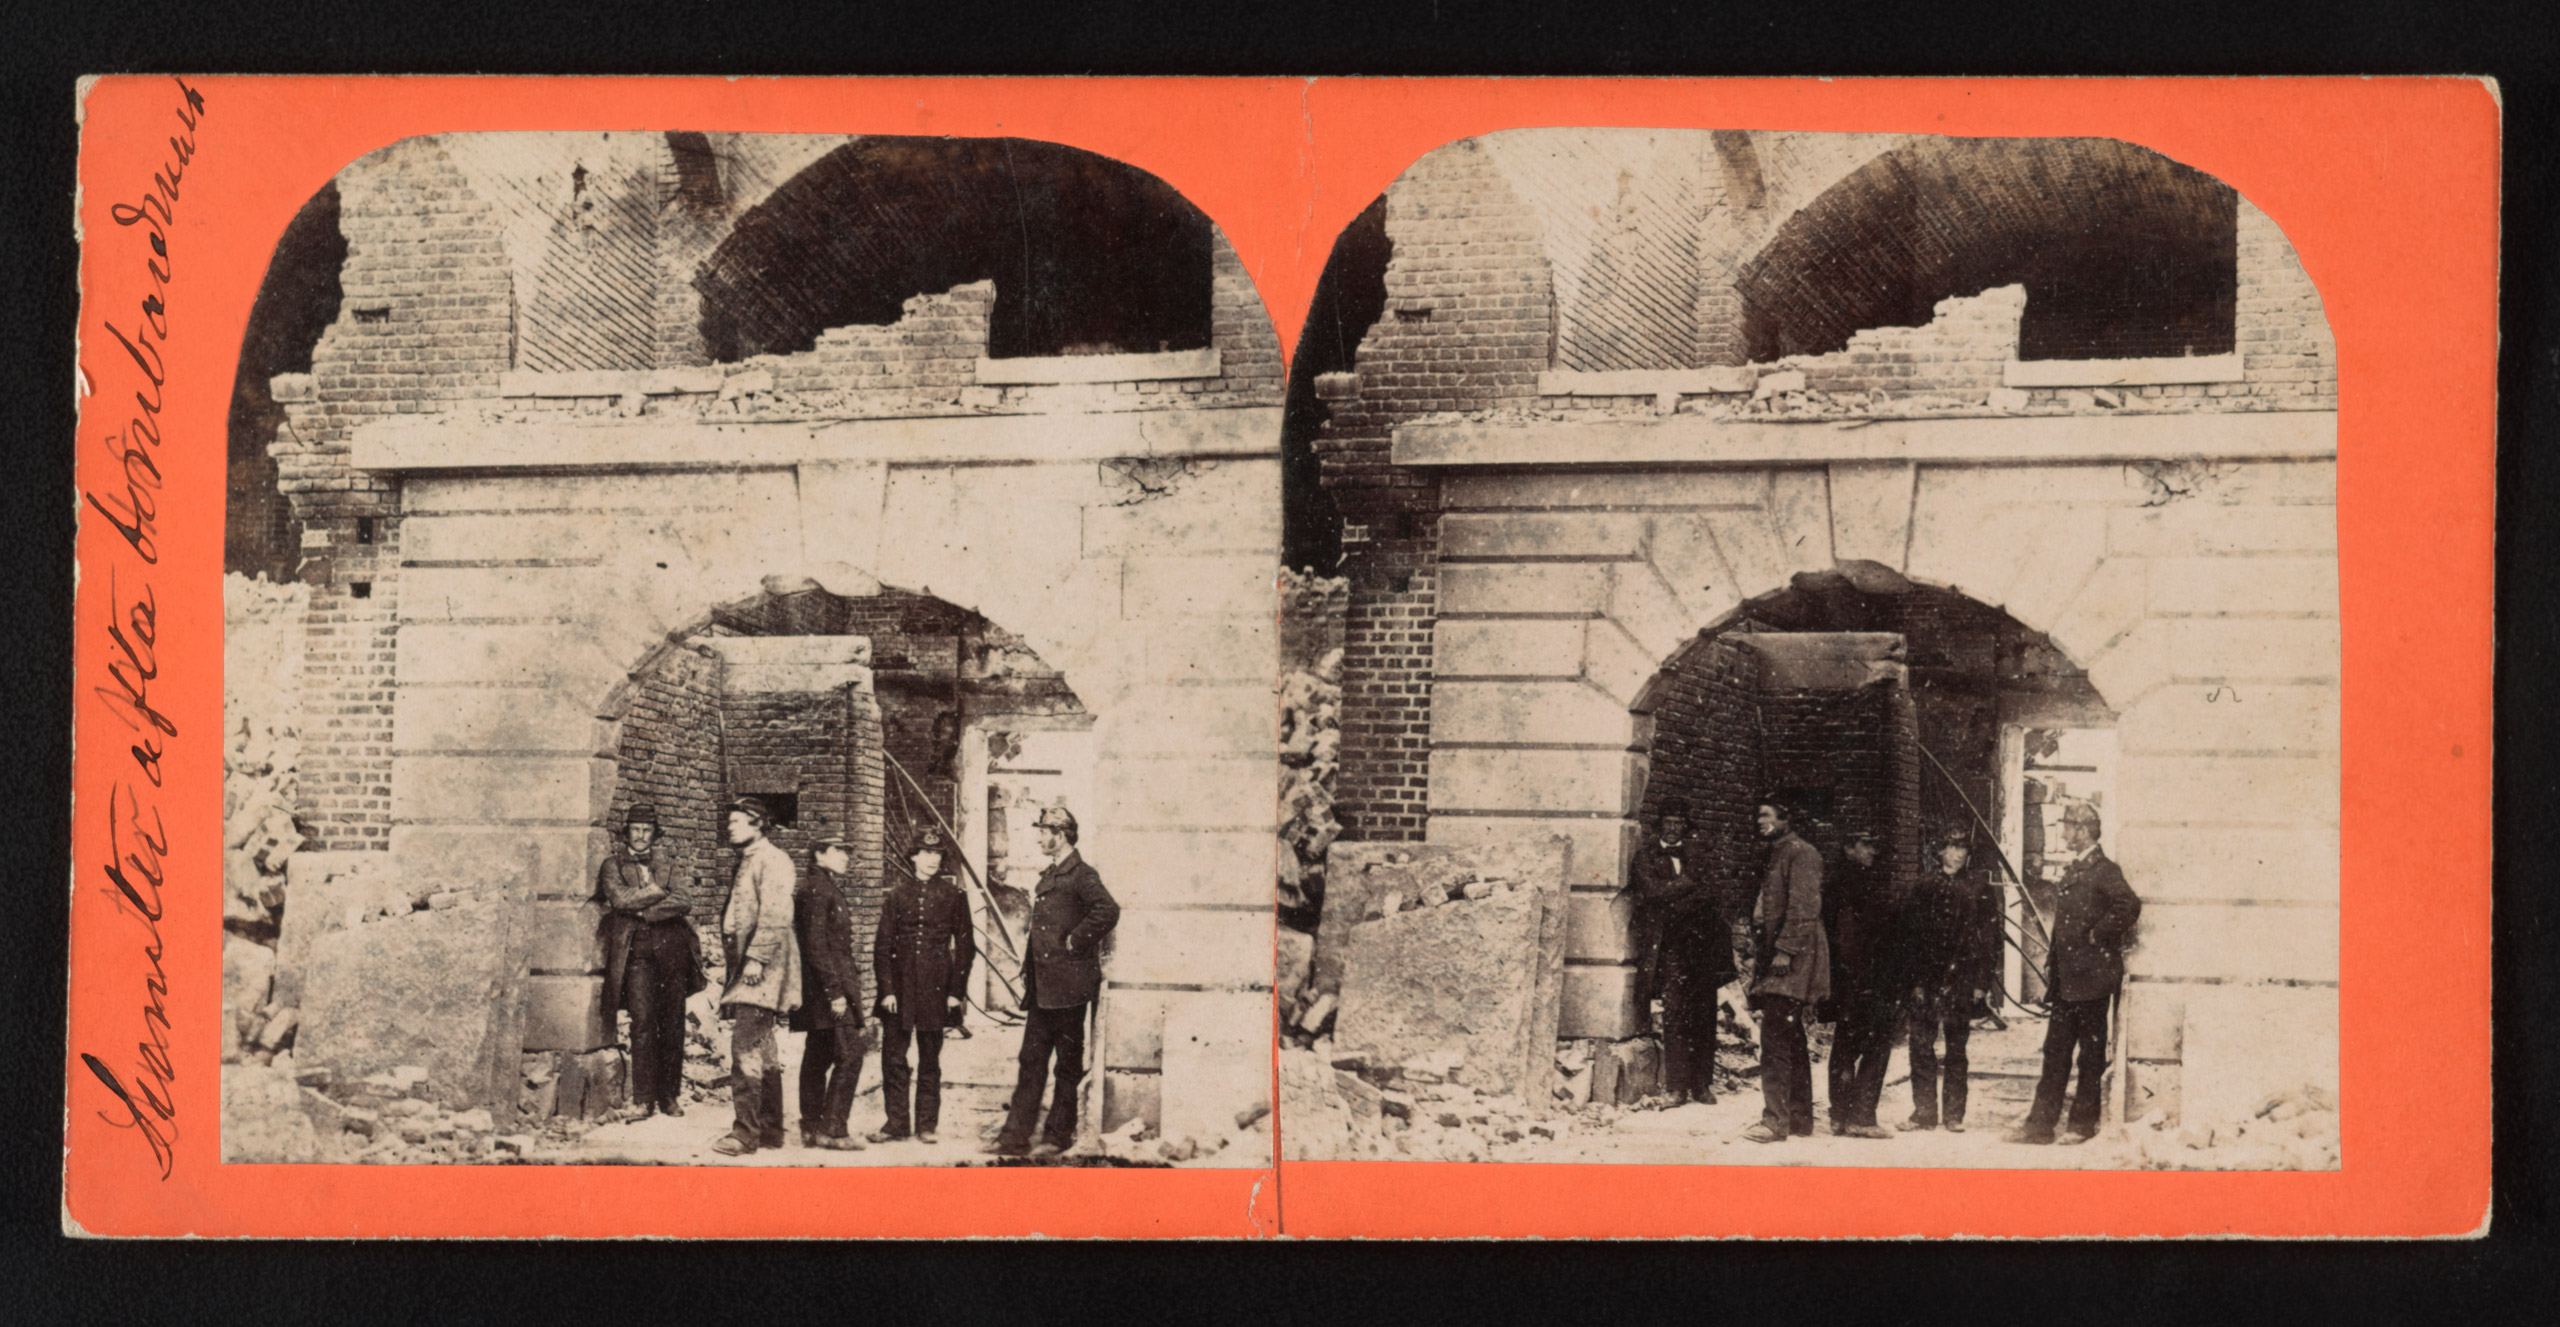 Sumter after the bombardment. Stereograph from The Robin G. Stanford Collection.